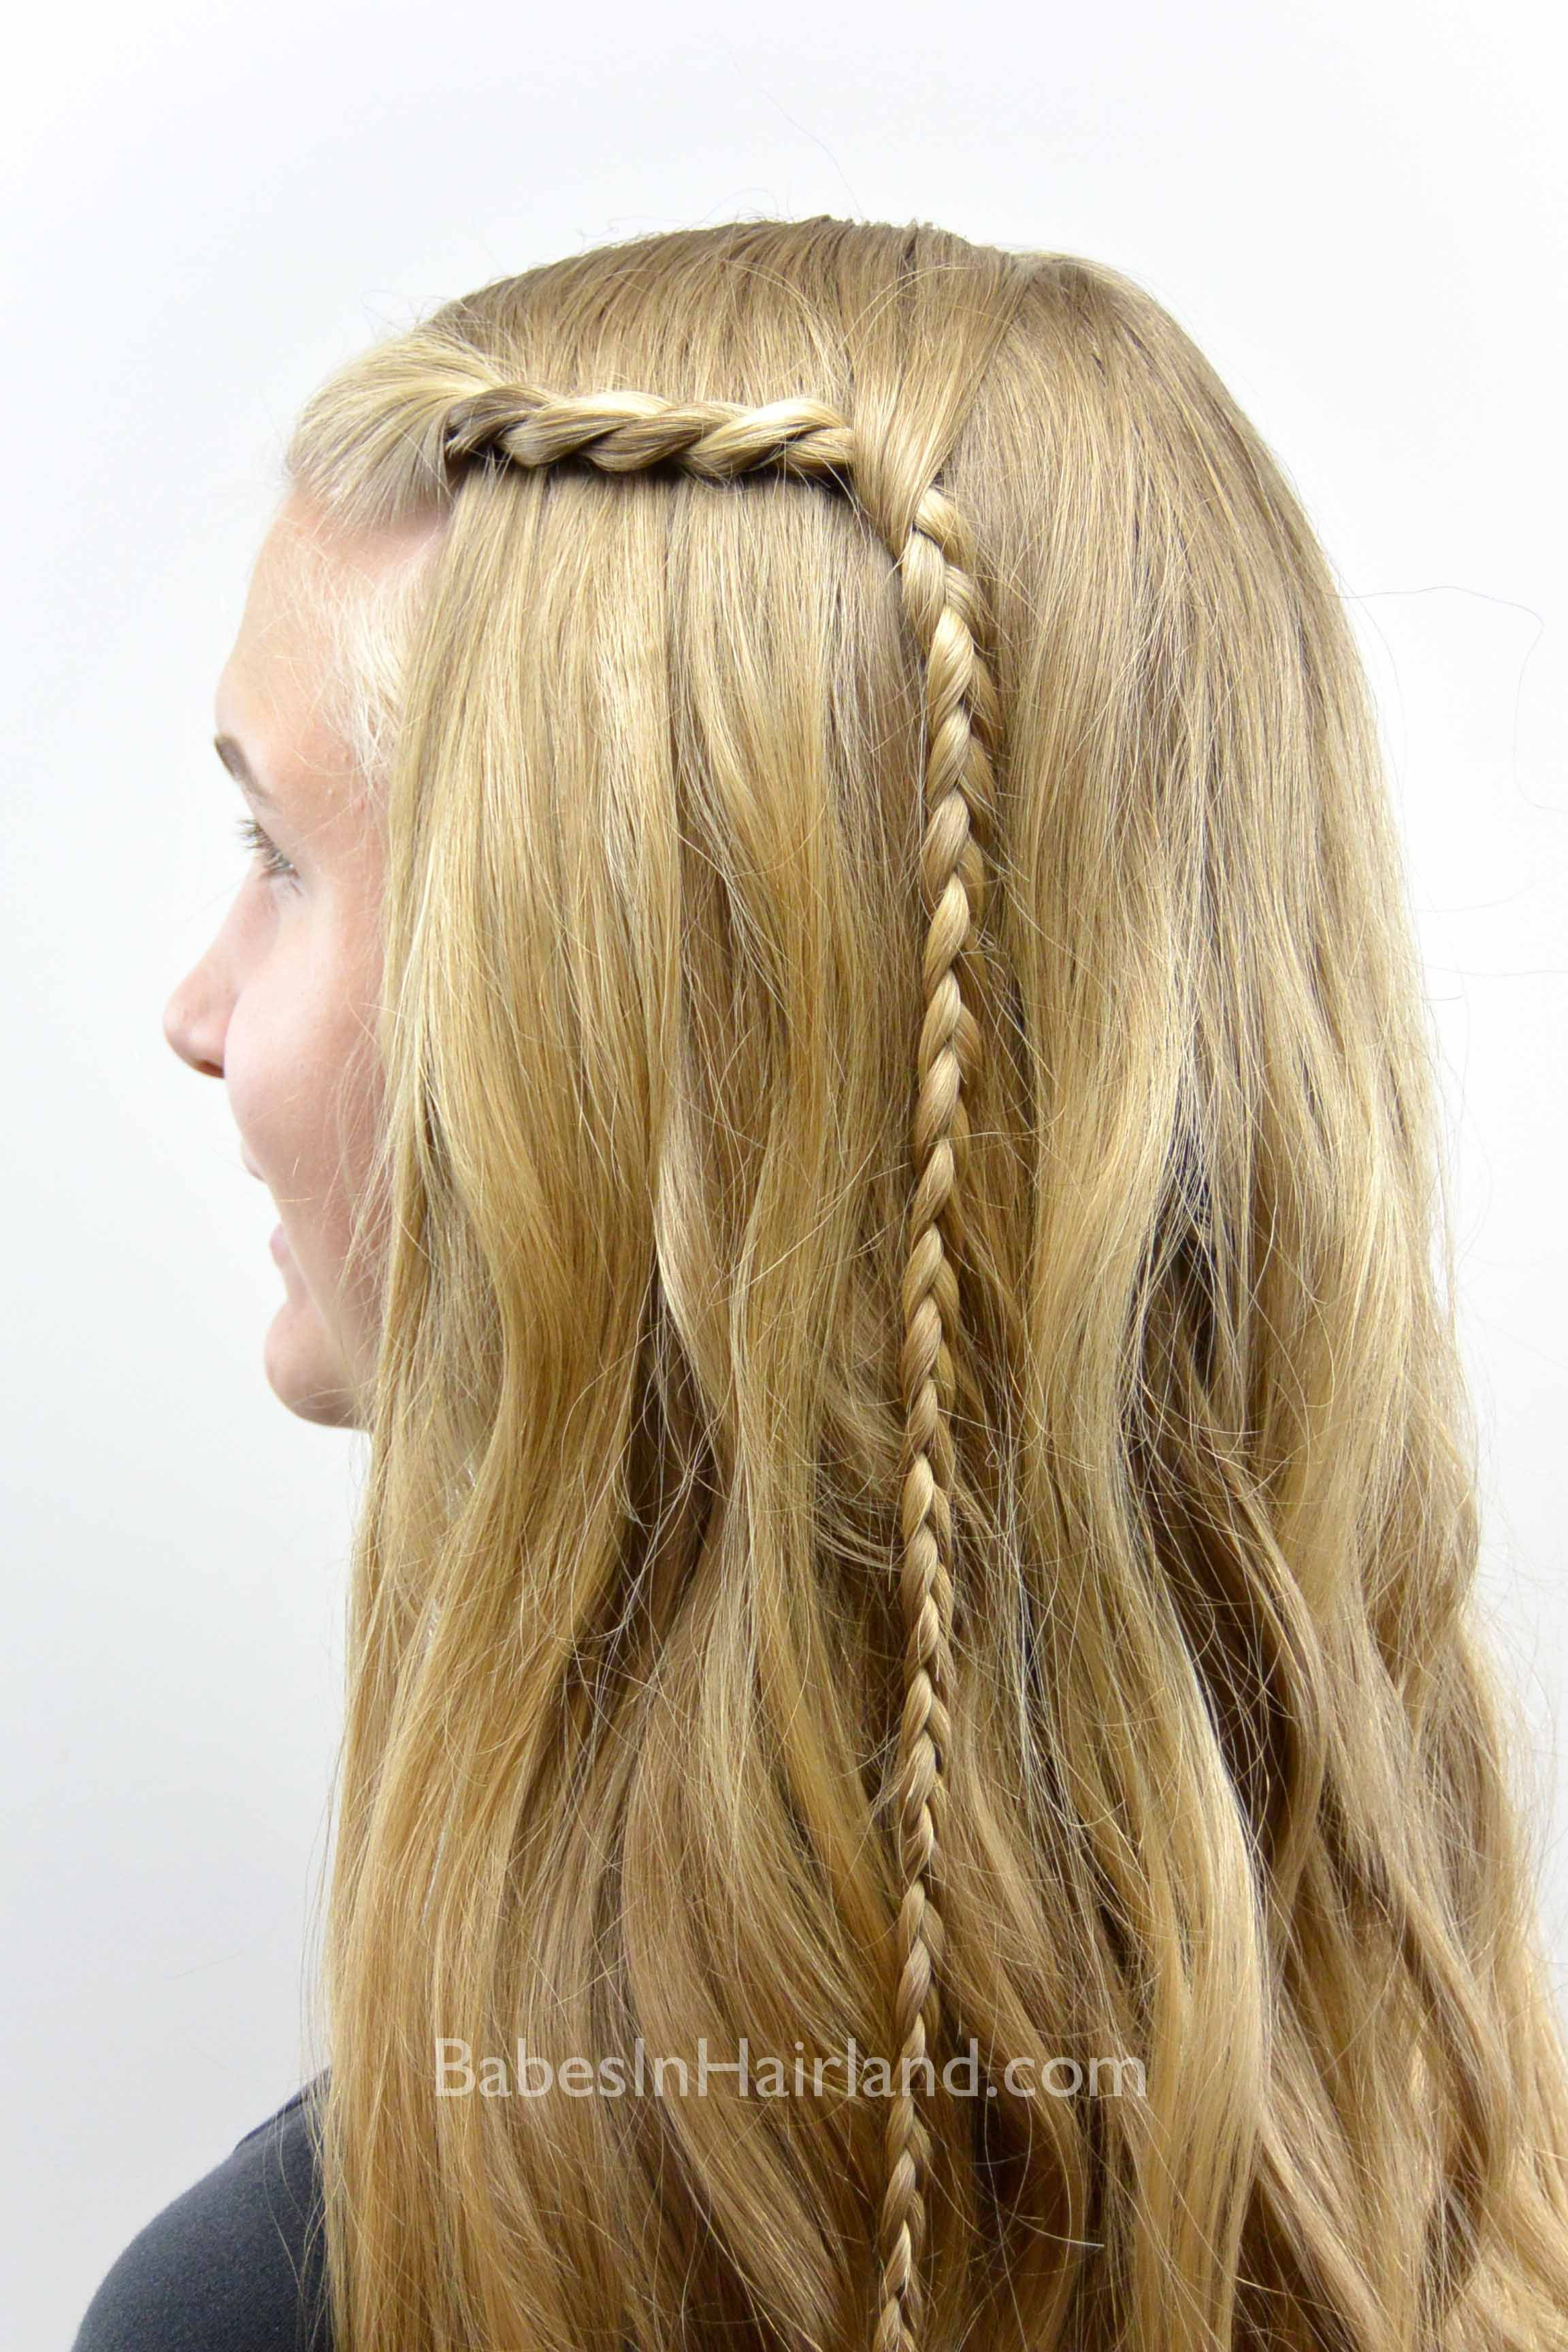 25 little girl hairstylesyou can do yourself hairstyles 25 little girl hairstylesyou can do yourself get out of your hairstyle rut and do something a little more fun via make it and love it solutioingenieria Choice Image